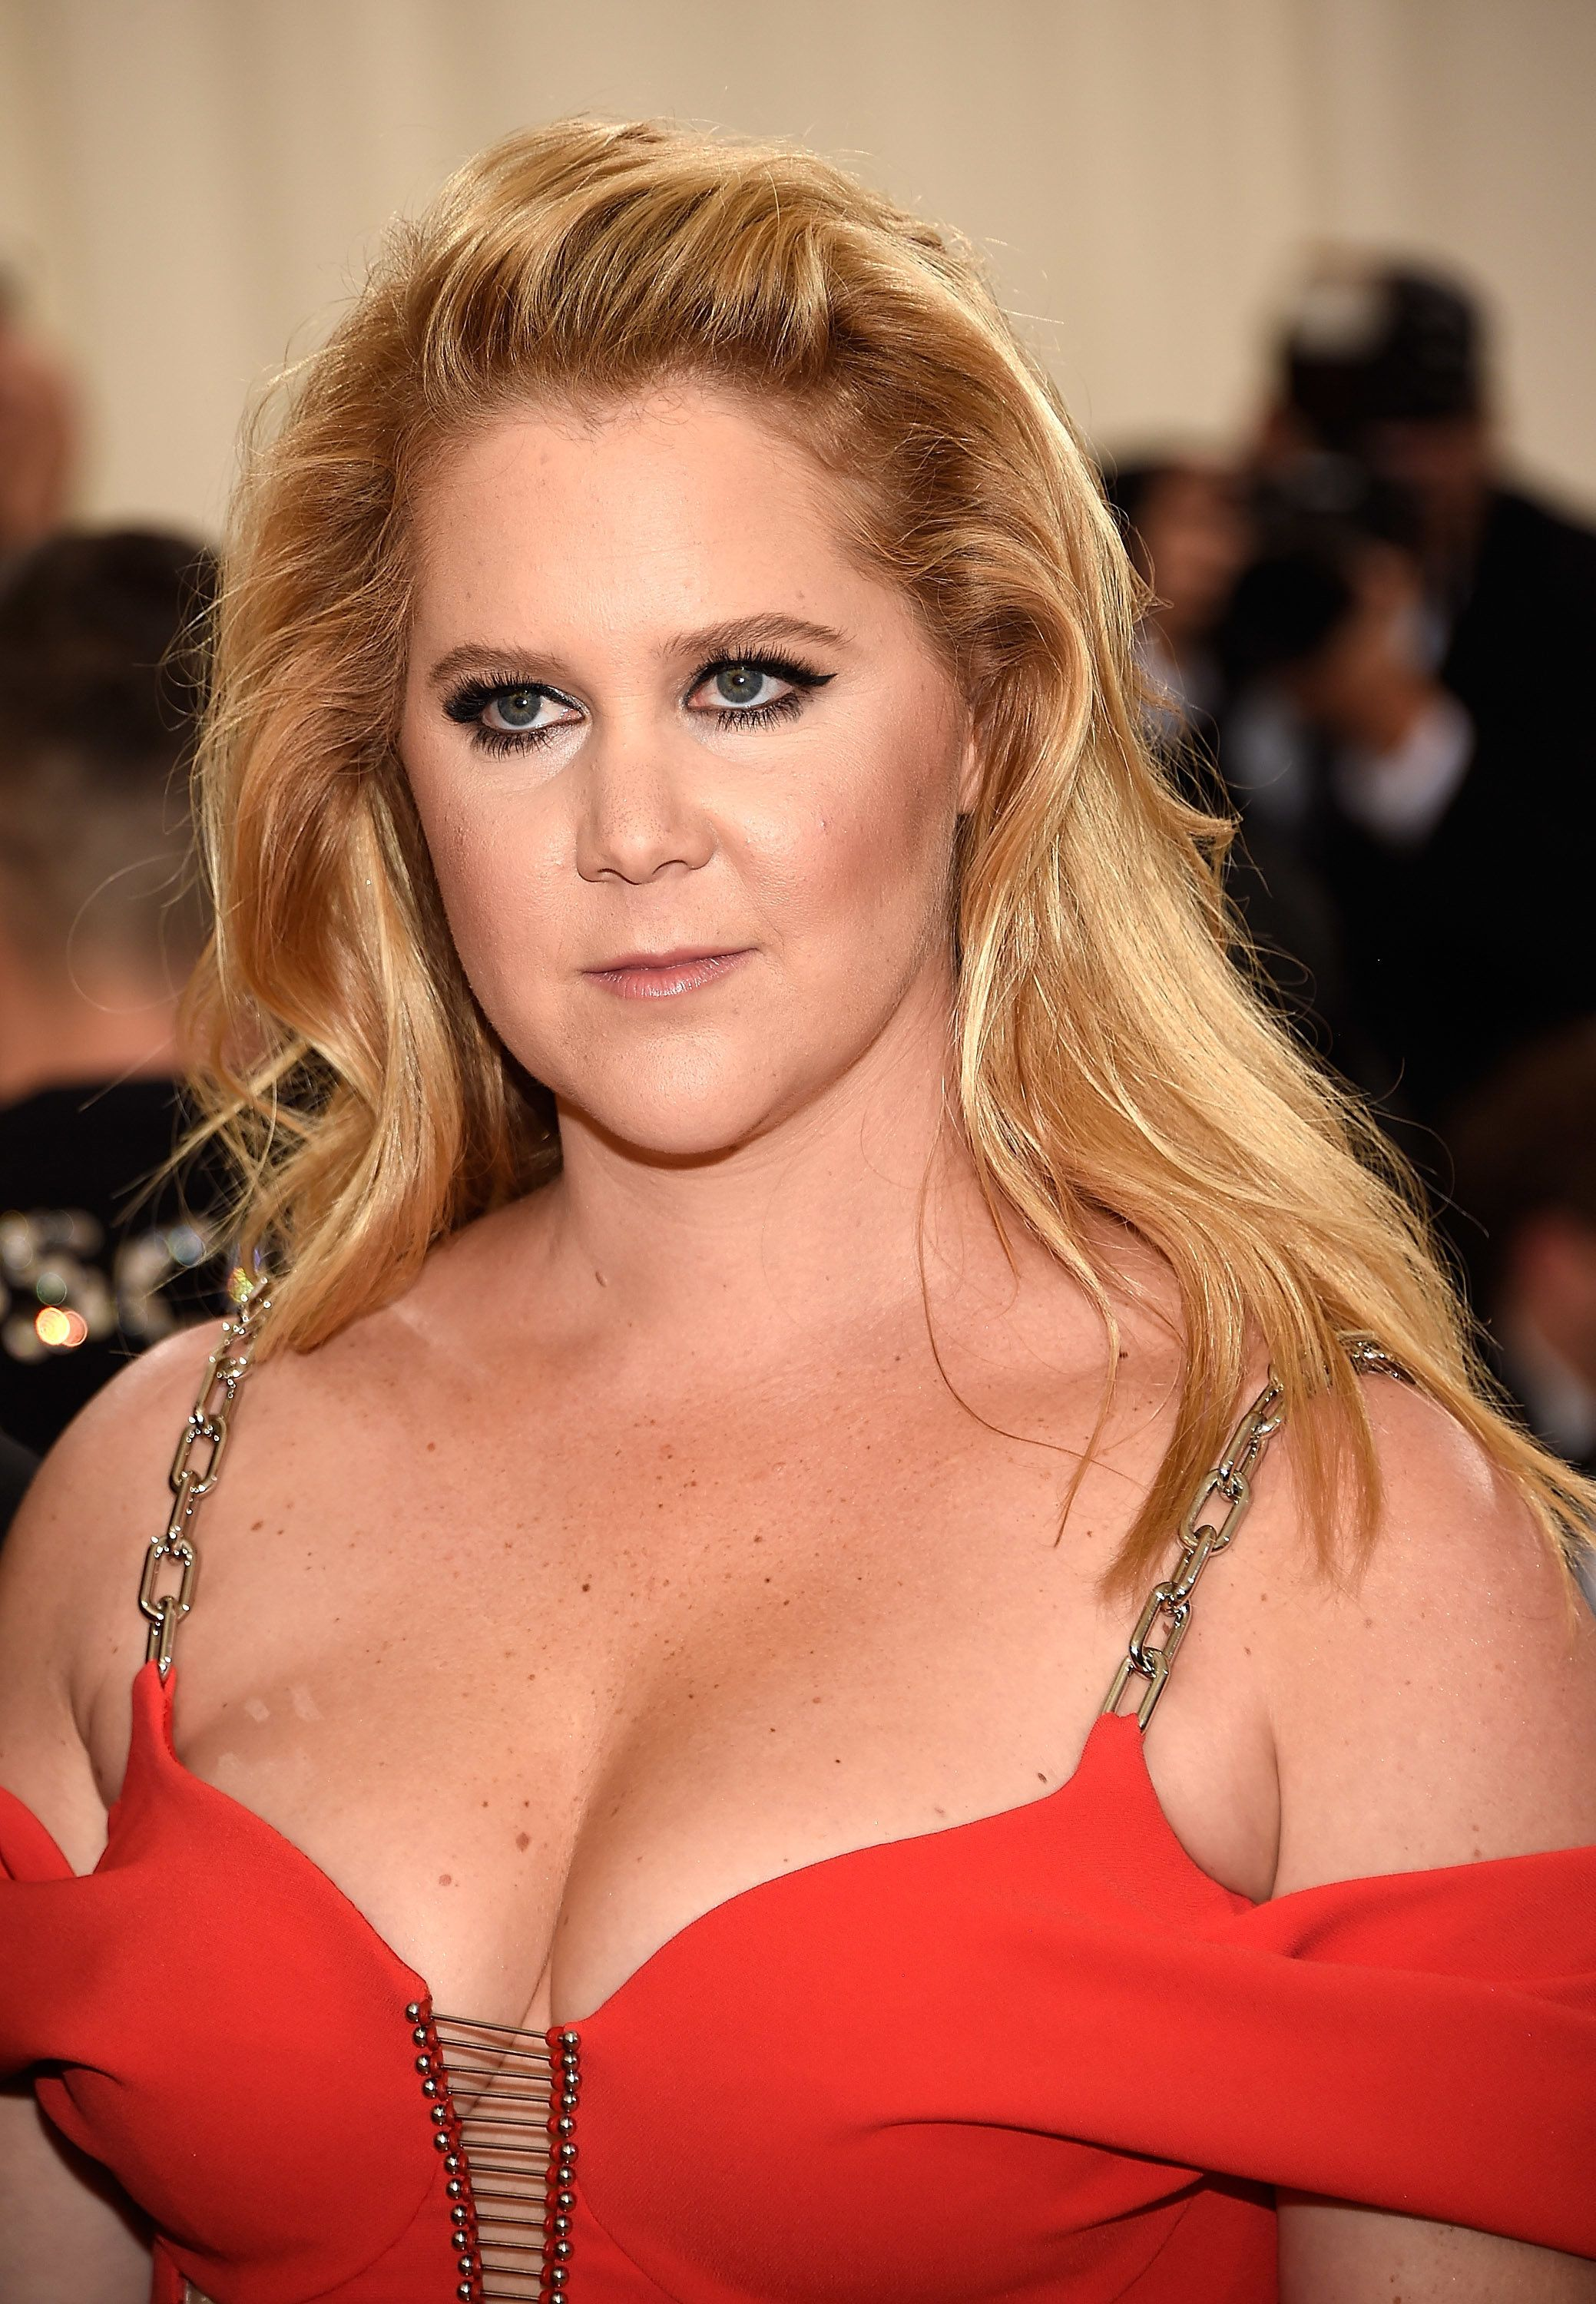 NEW YORK, NY - MAY 02:  Amy Schumer attends 'Manus x Machina: Fashion In An Age Of Technology' Costume Institute Gala at Metropolitan Museum of Art on May 2, 2016 in New York City.  (Photo by Kevin Mazur/WireImage)